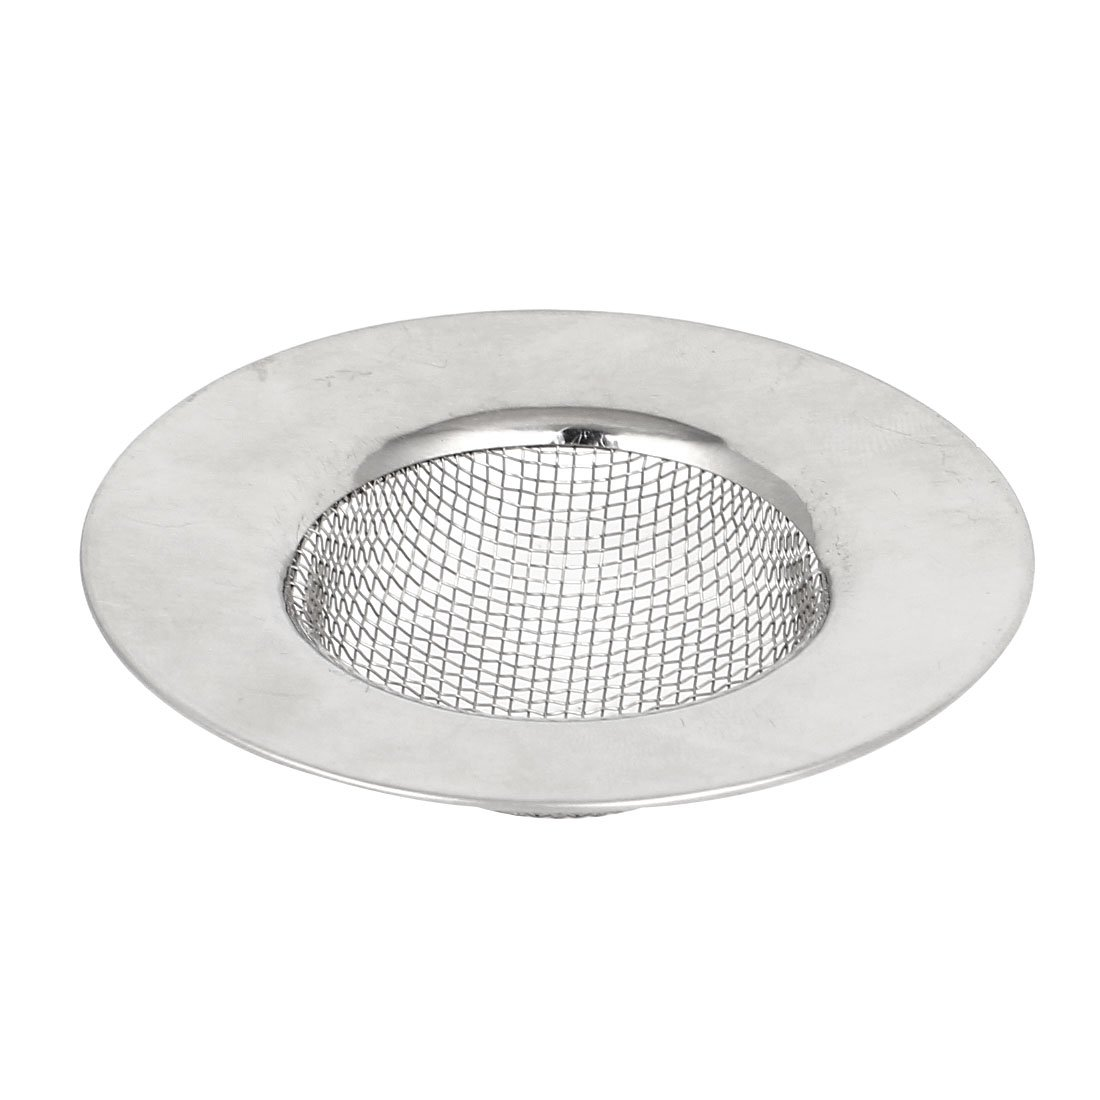 uxcell Stainless Steel Kitchen Water Sink Drain Strainer Basin Drainer a15060600ux0347